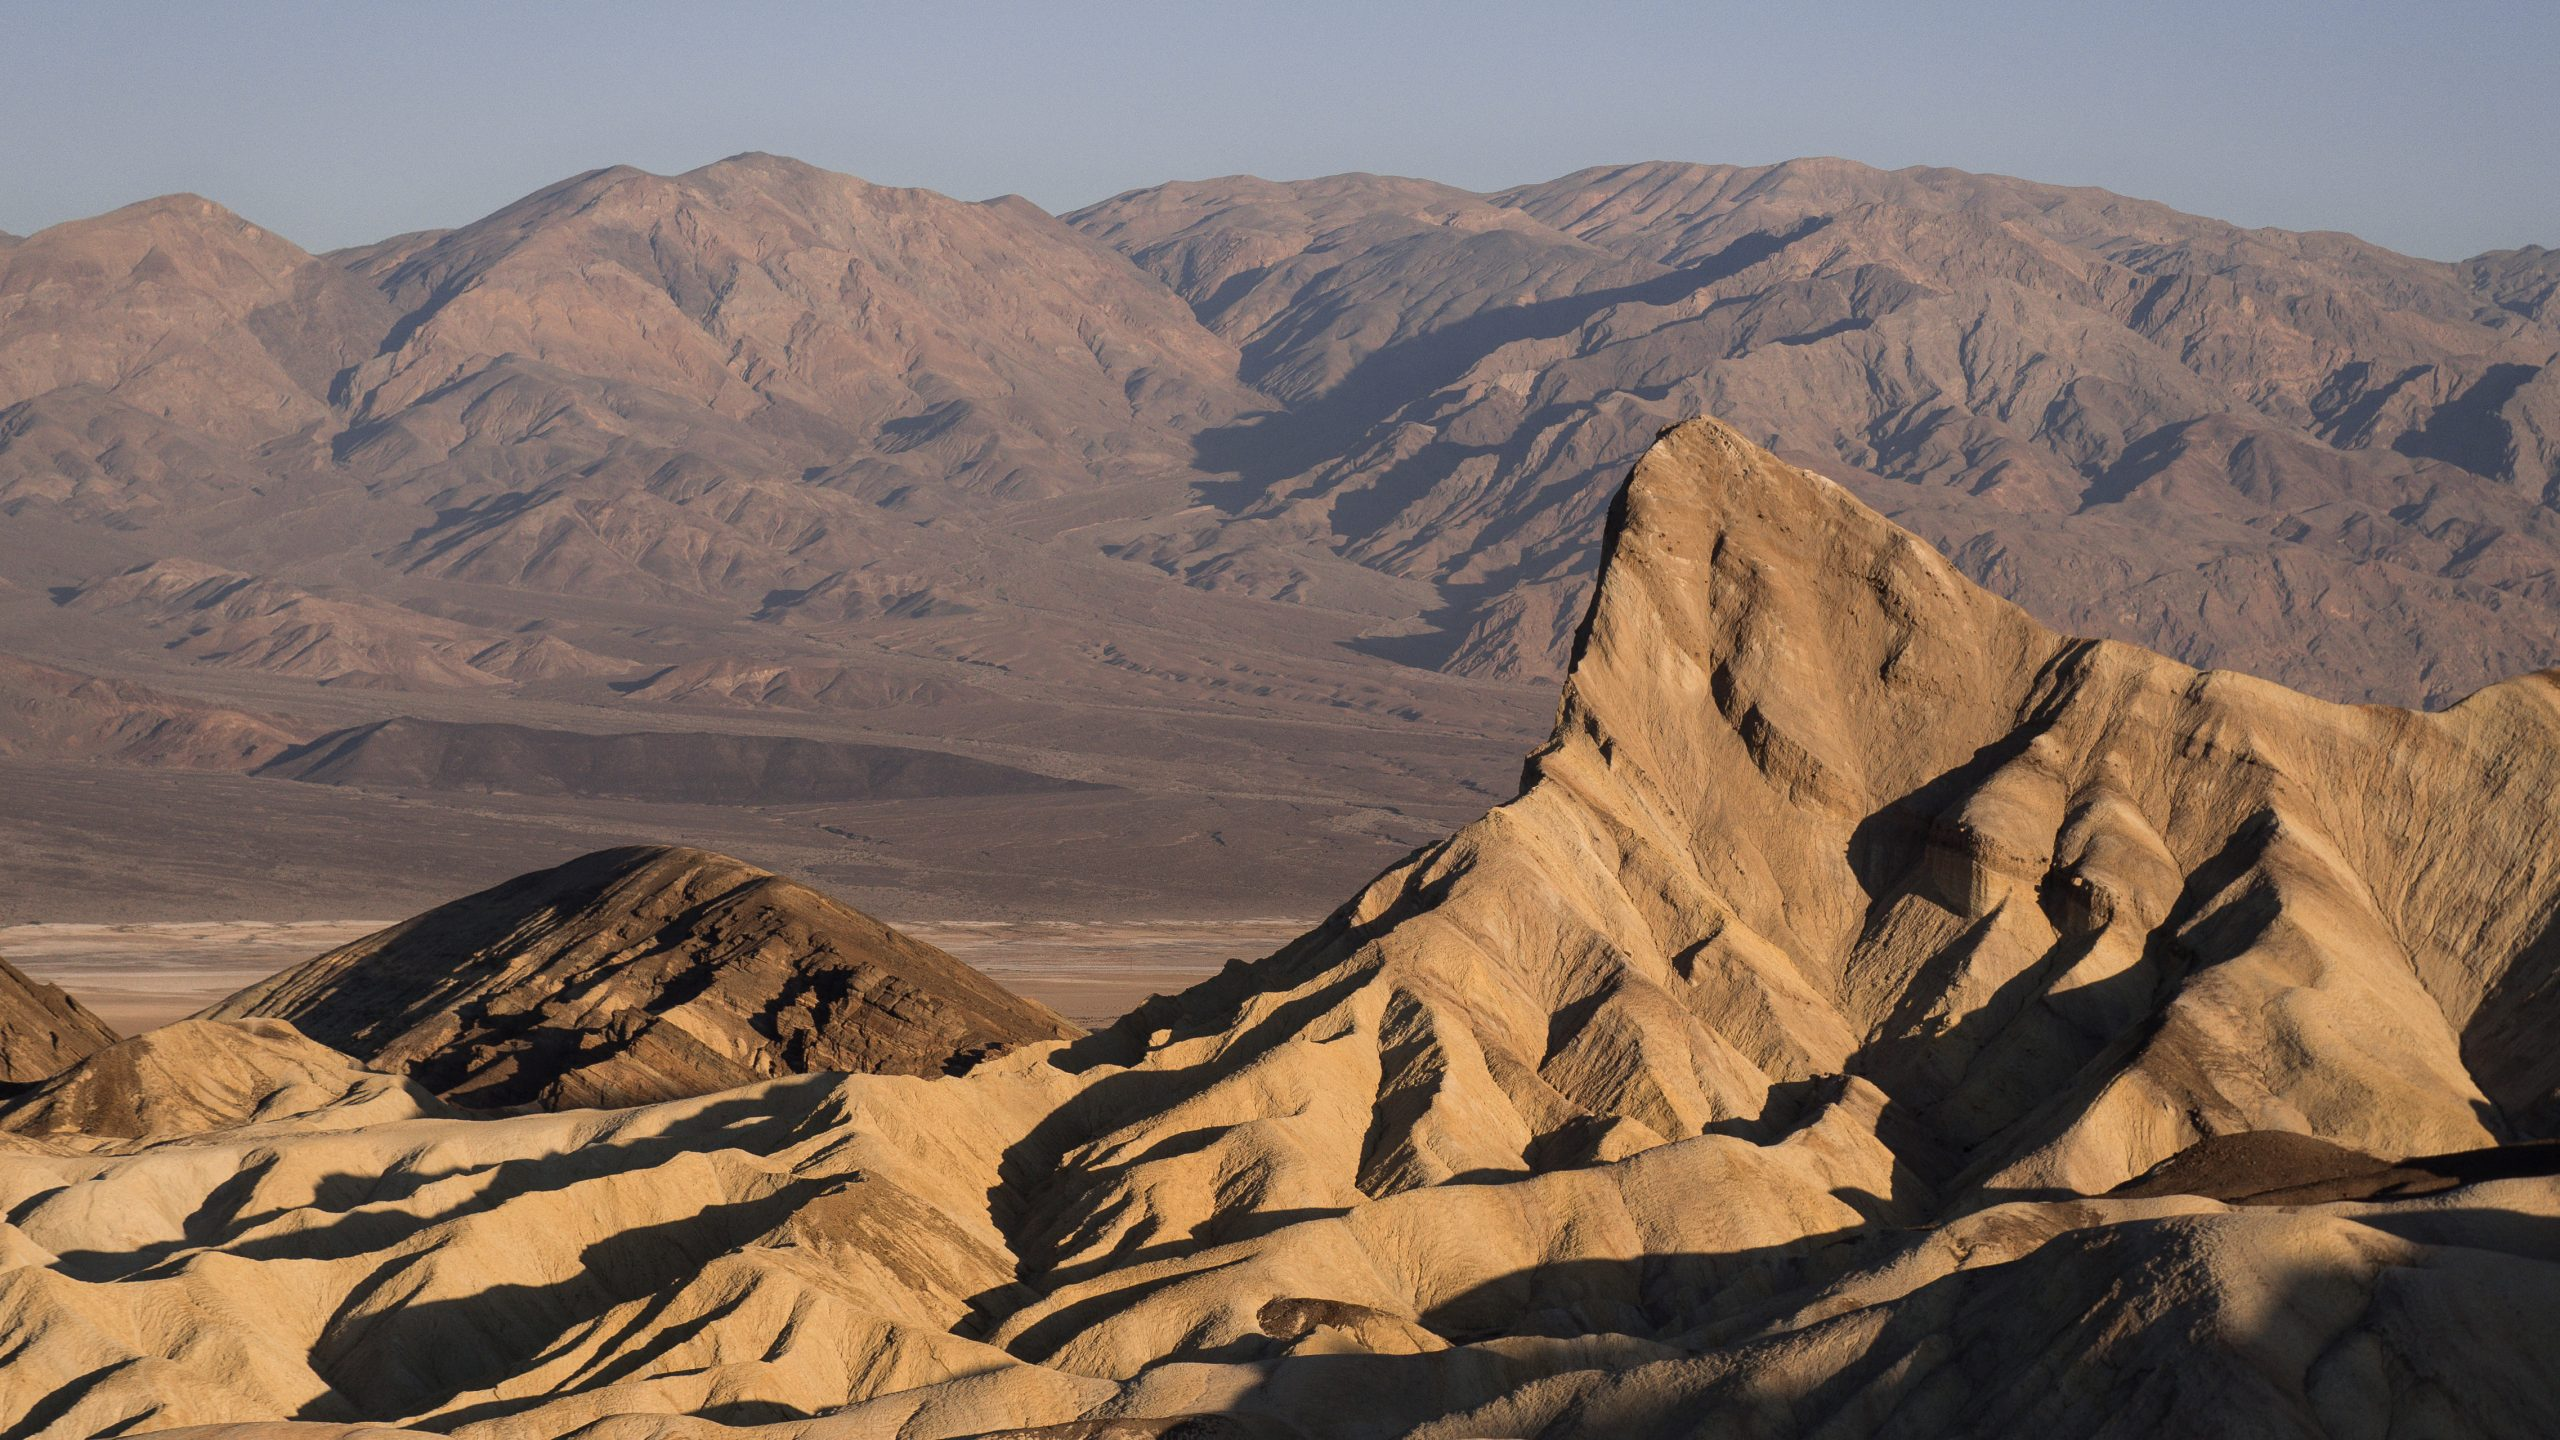 Southern California with Death Valley & Joshua Tree National Parks | Death Valley National Park, California, USA